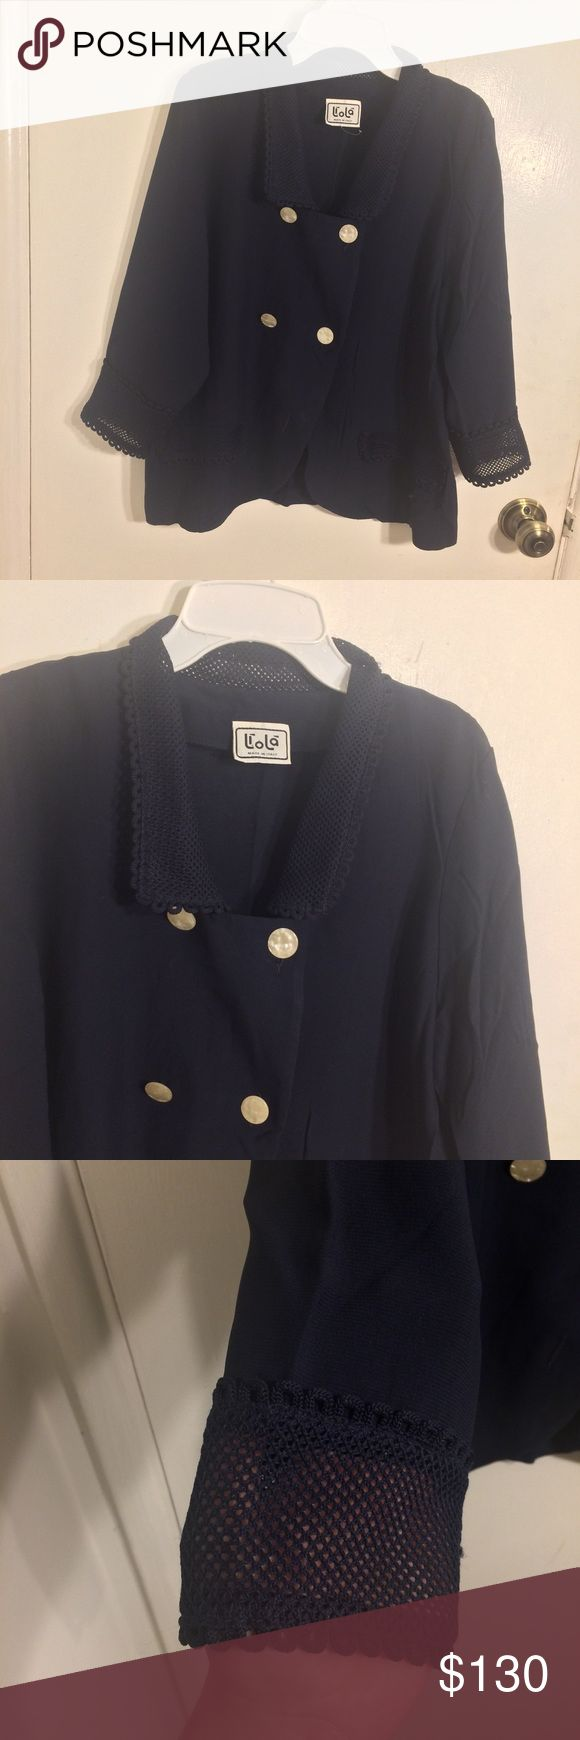 Liola Made In Italy Jacket Liola Made In Italy navy blue collared button up adjustable Blazer jacket with eyelet lace trim along the sleeve ends, collar, and pocket flaps. Pearlescent opal-like buttons. Adjustable, meaning it can been worn a number of different ways/styles depending on how you button it up. Like new condition. Flawless perfect condition. Liola Jackets & Coats Blazers